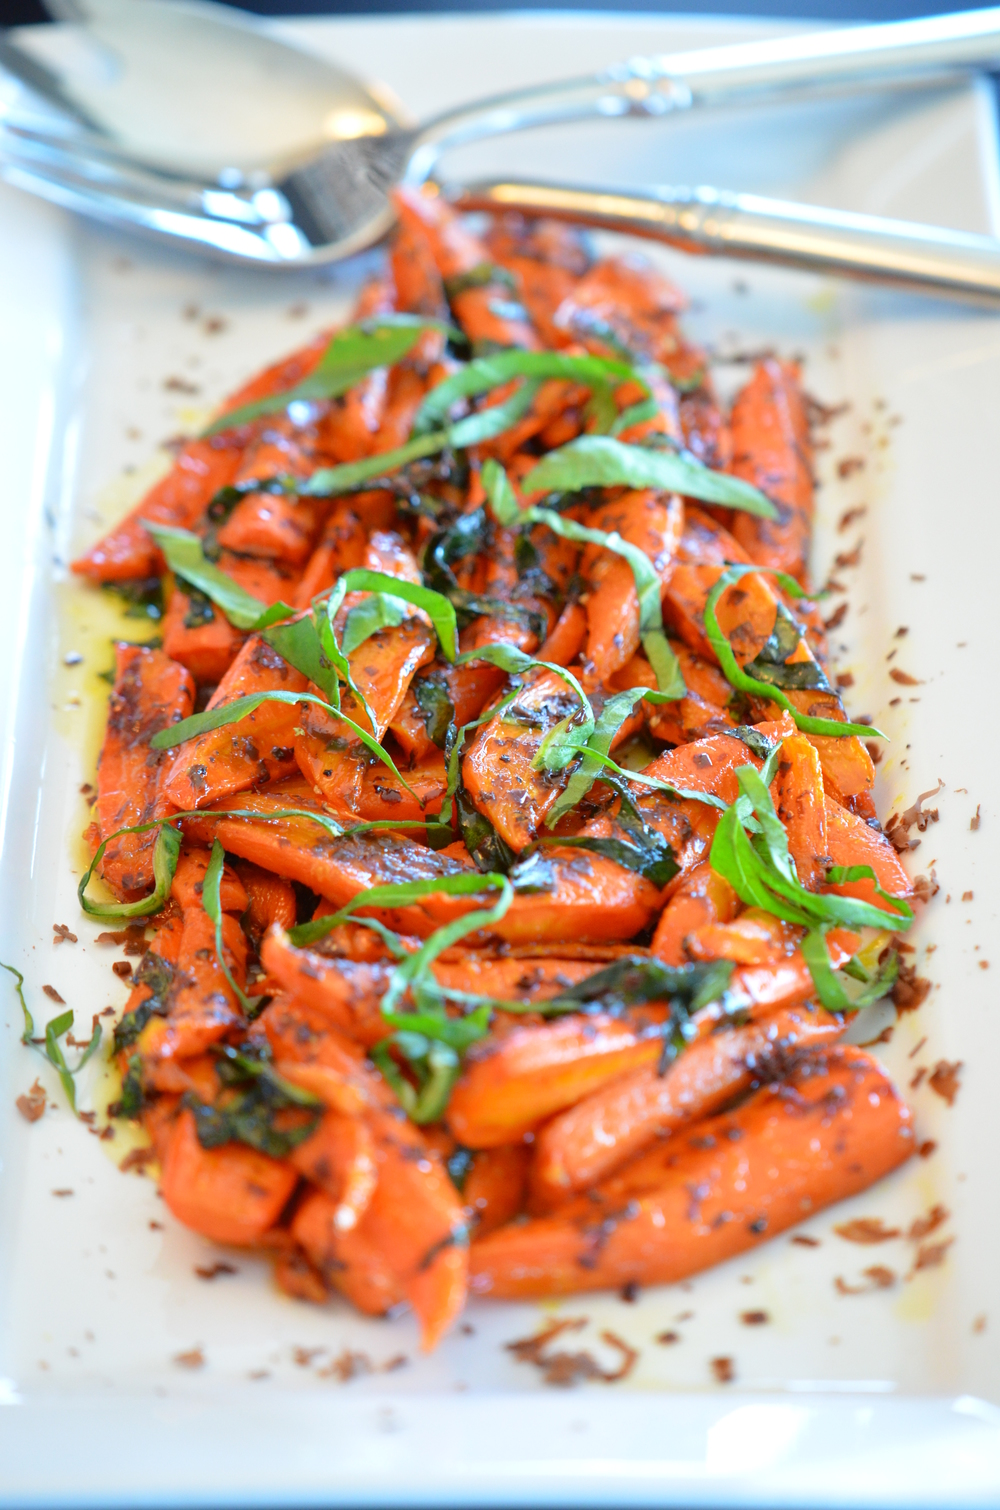 Carrots get a rustic and chic makeover!